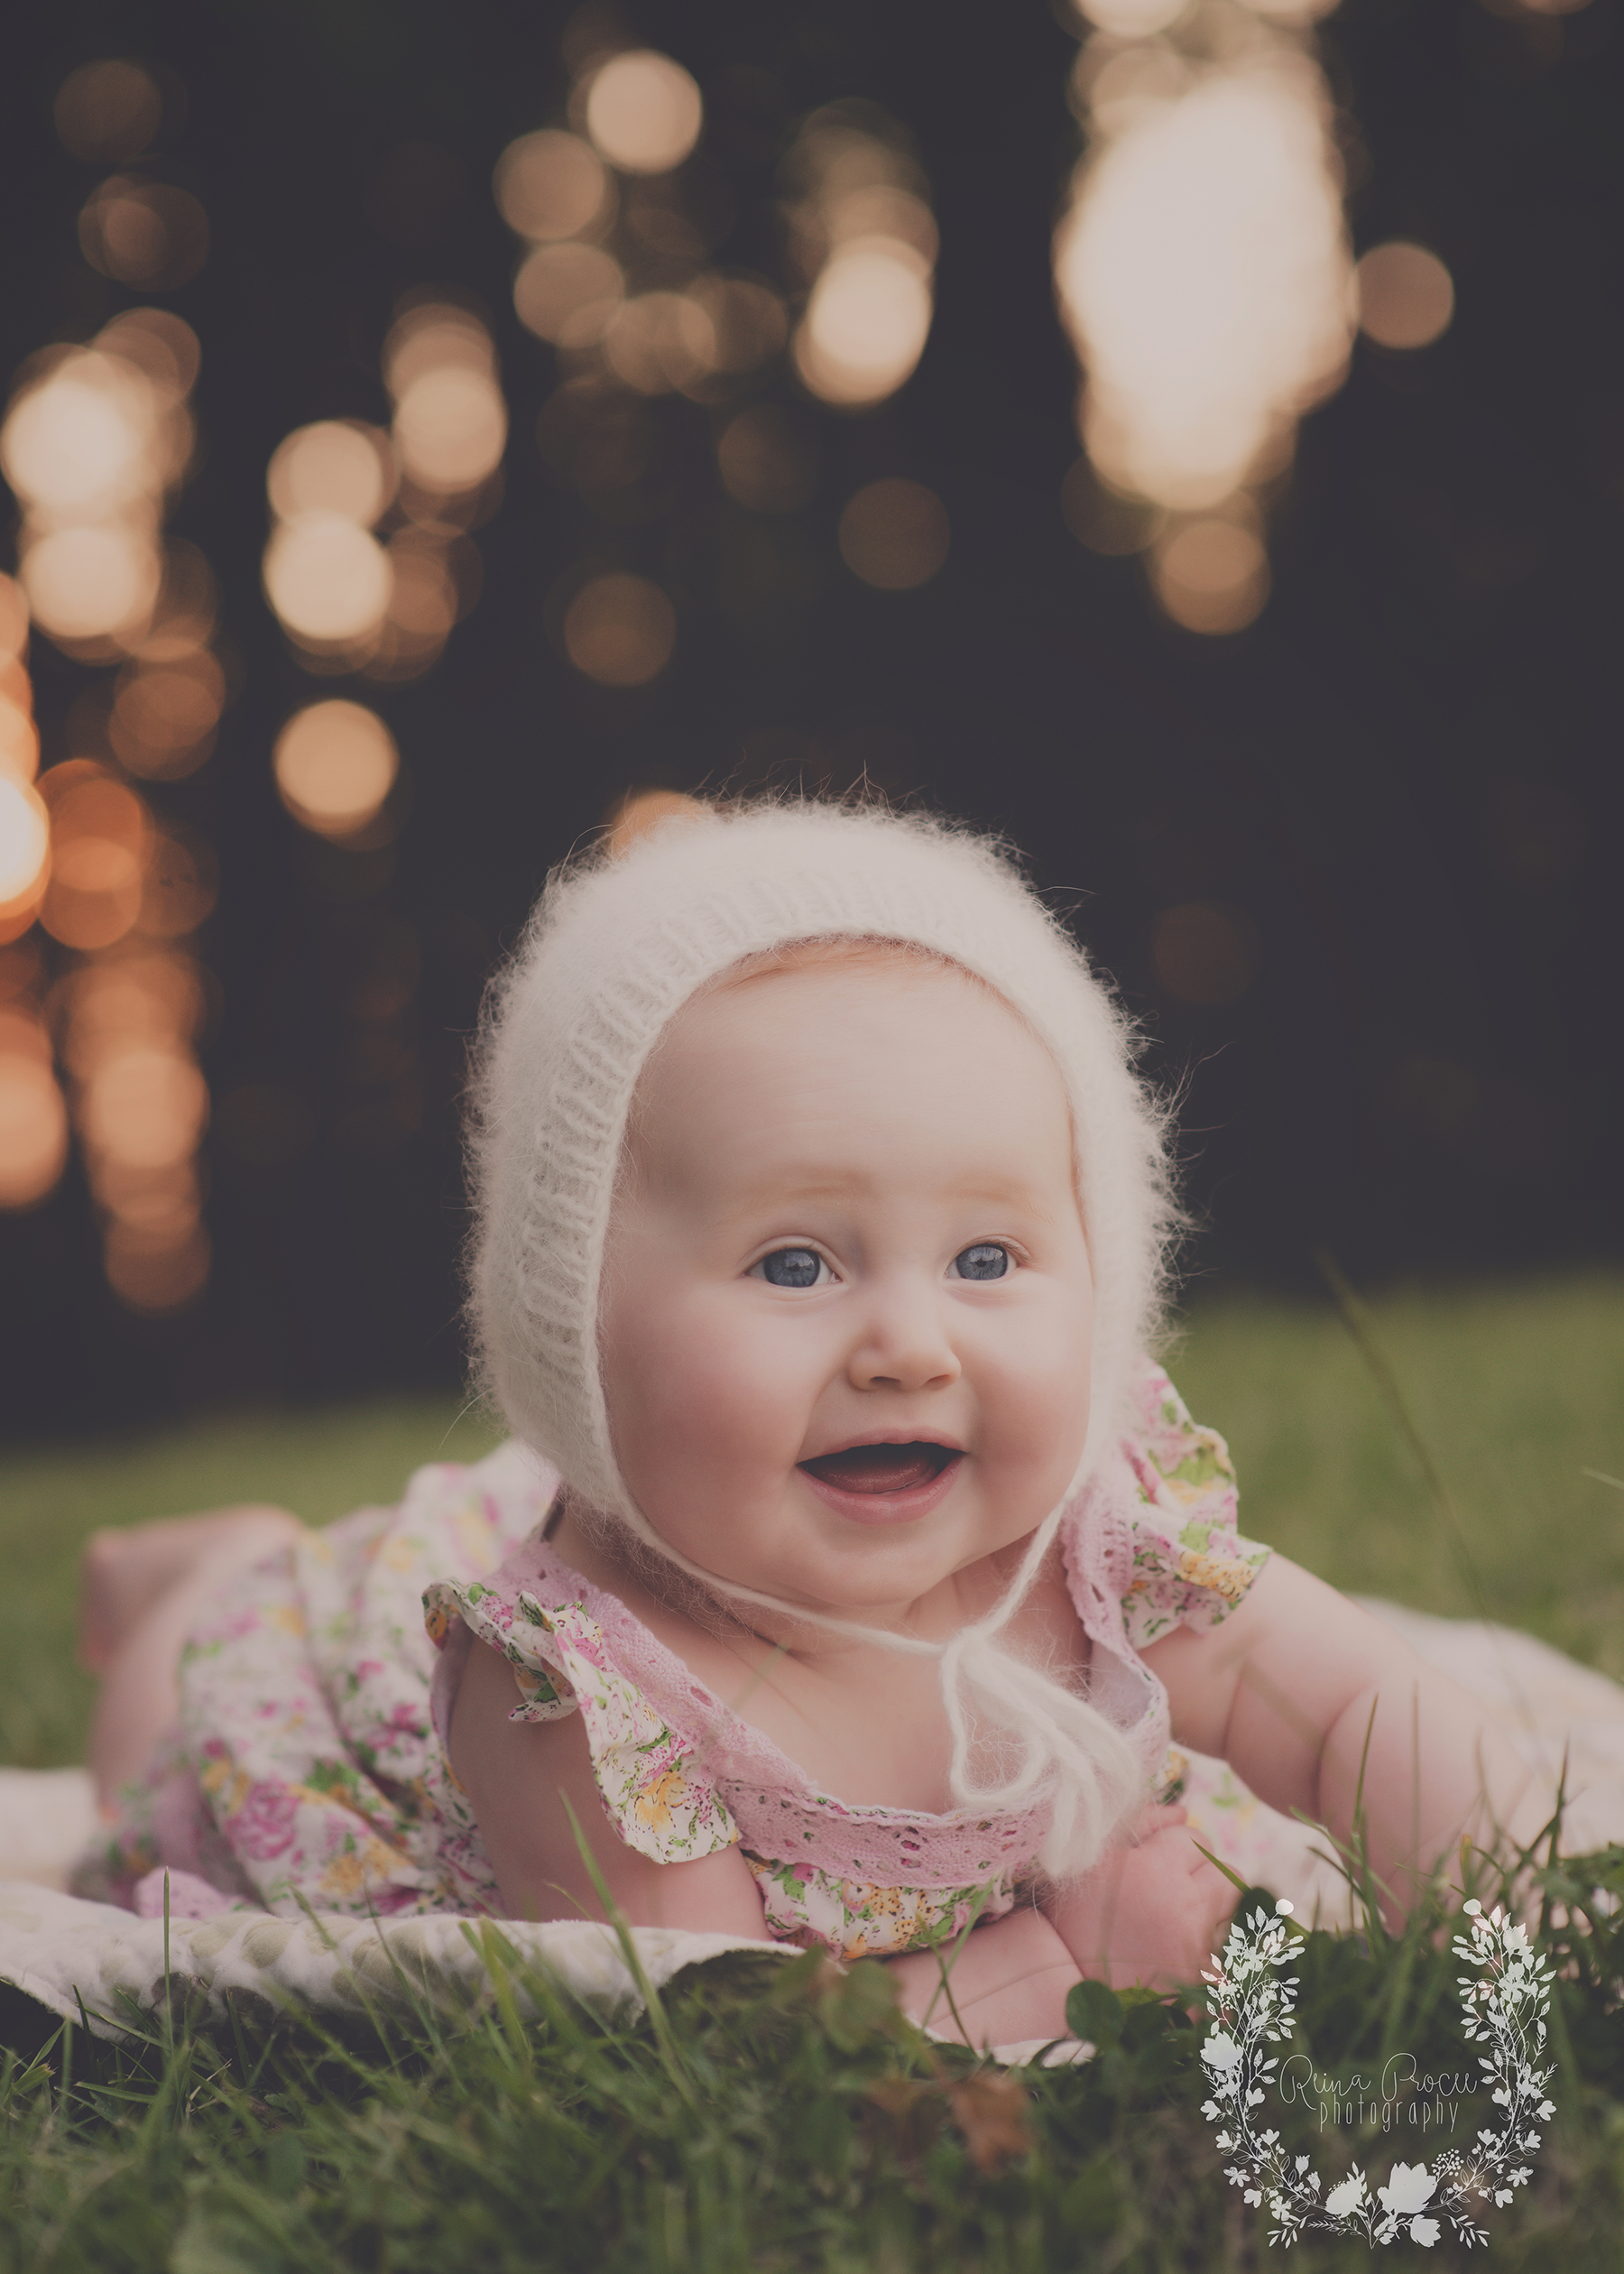 montreal-baby-pictures-sunset-6-months-beautiful-girl-28